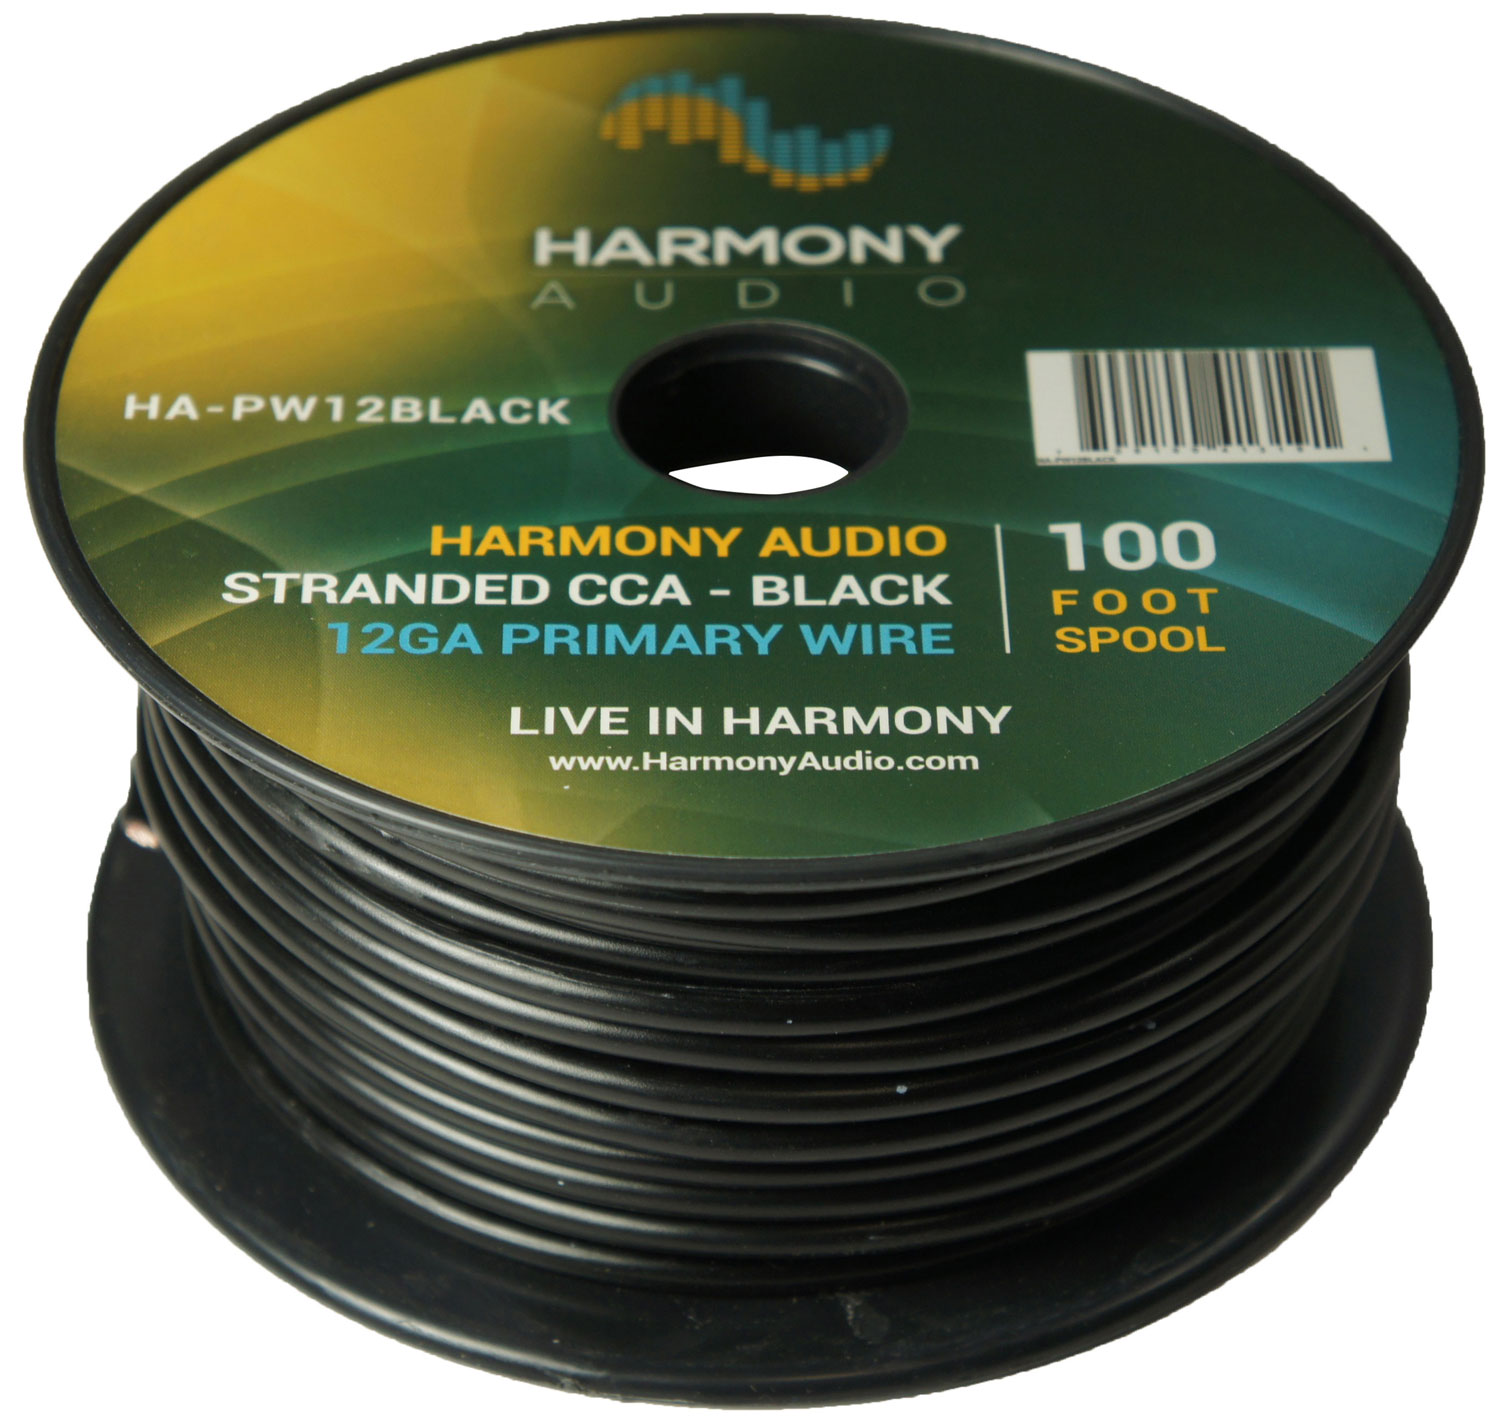 Harmony Audio HA-PW12BLACK Primary Single Conductor 12 Gauge Black Power or Ground Wire Roll 100 Feet Cable for Car Audio / Trailer / Model Train / Remote